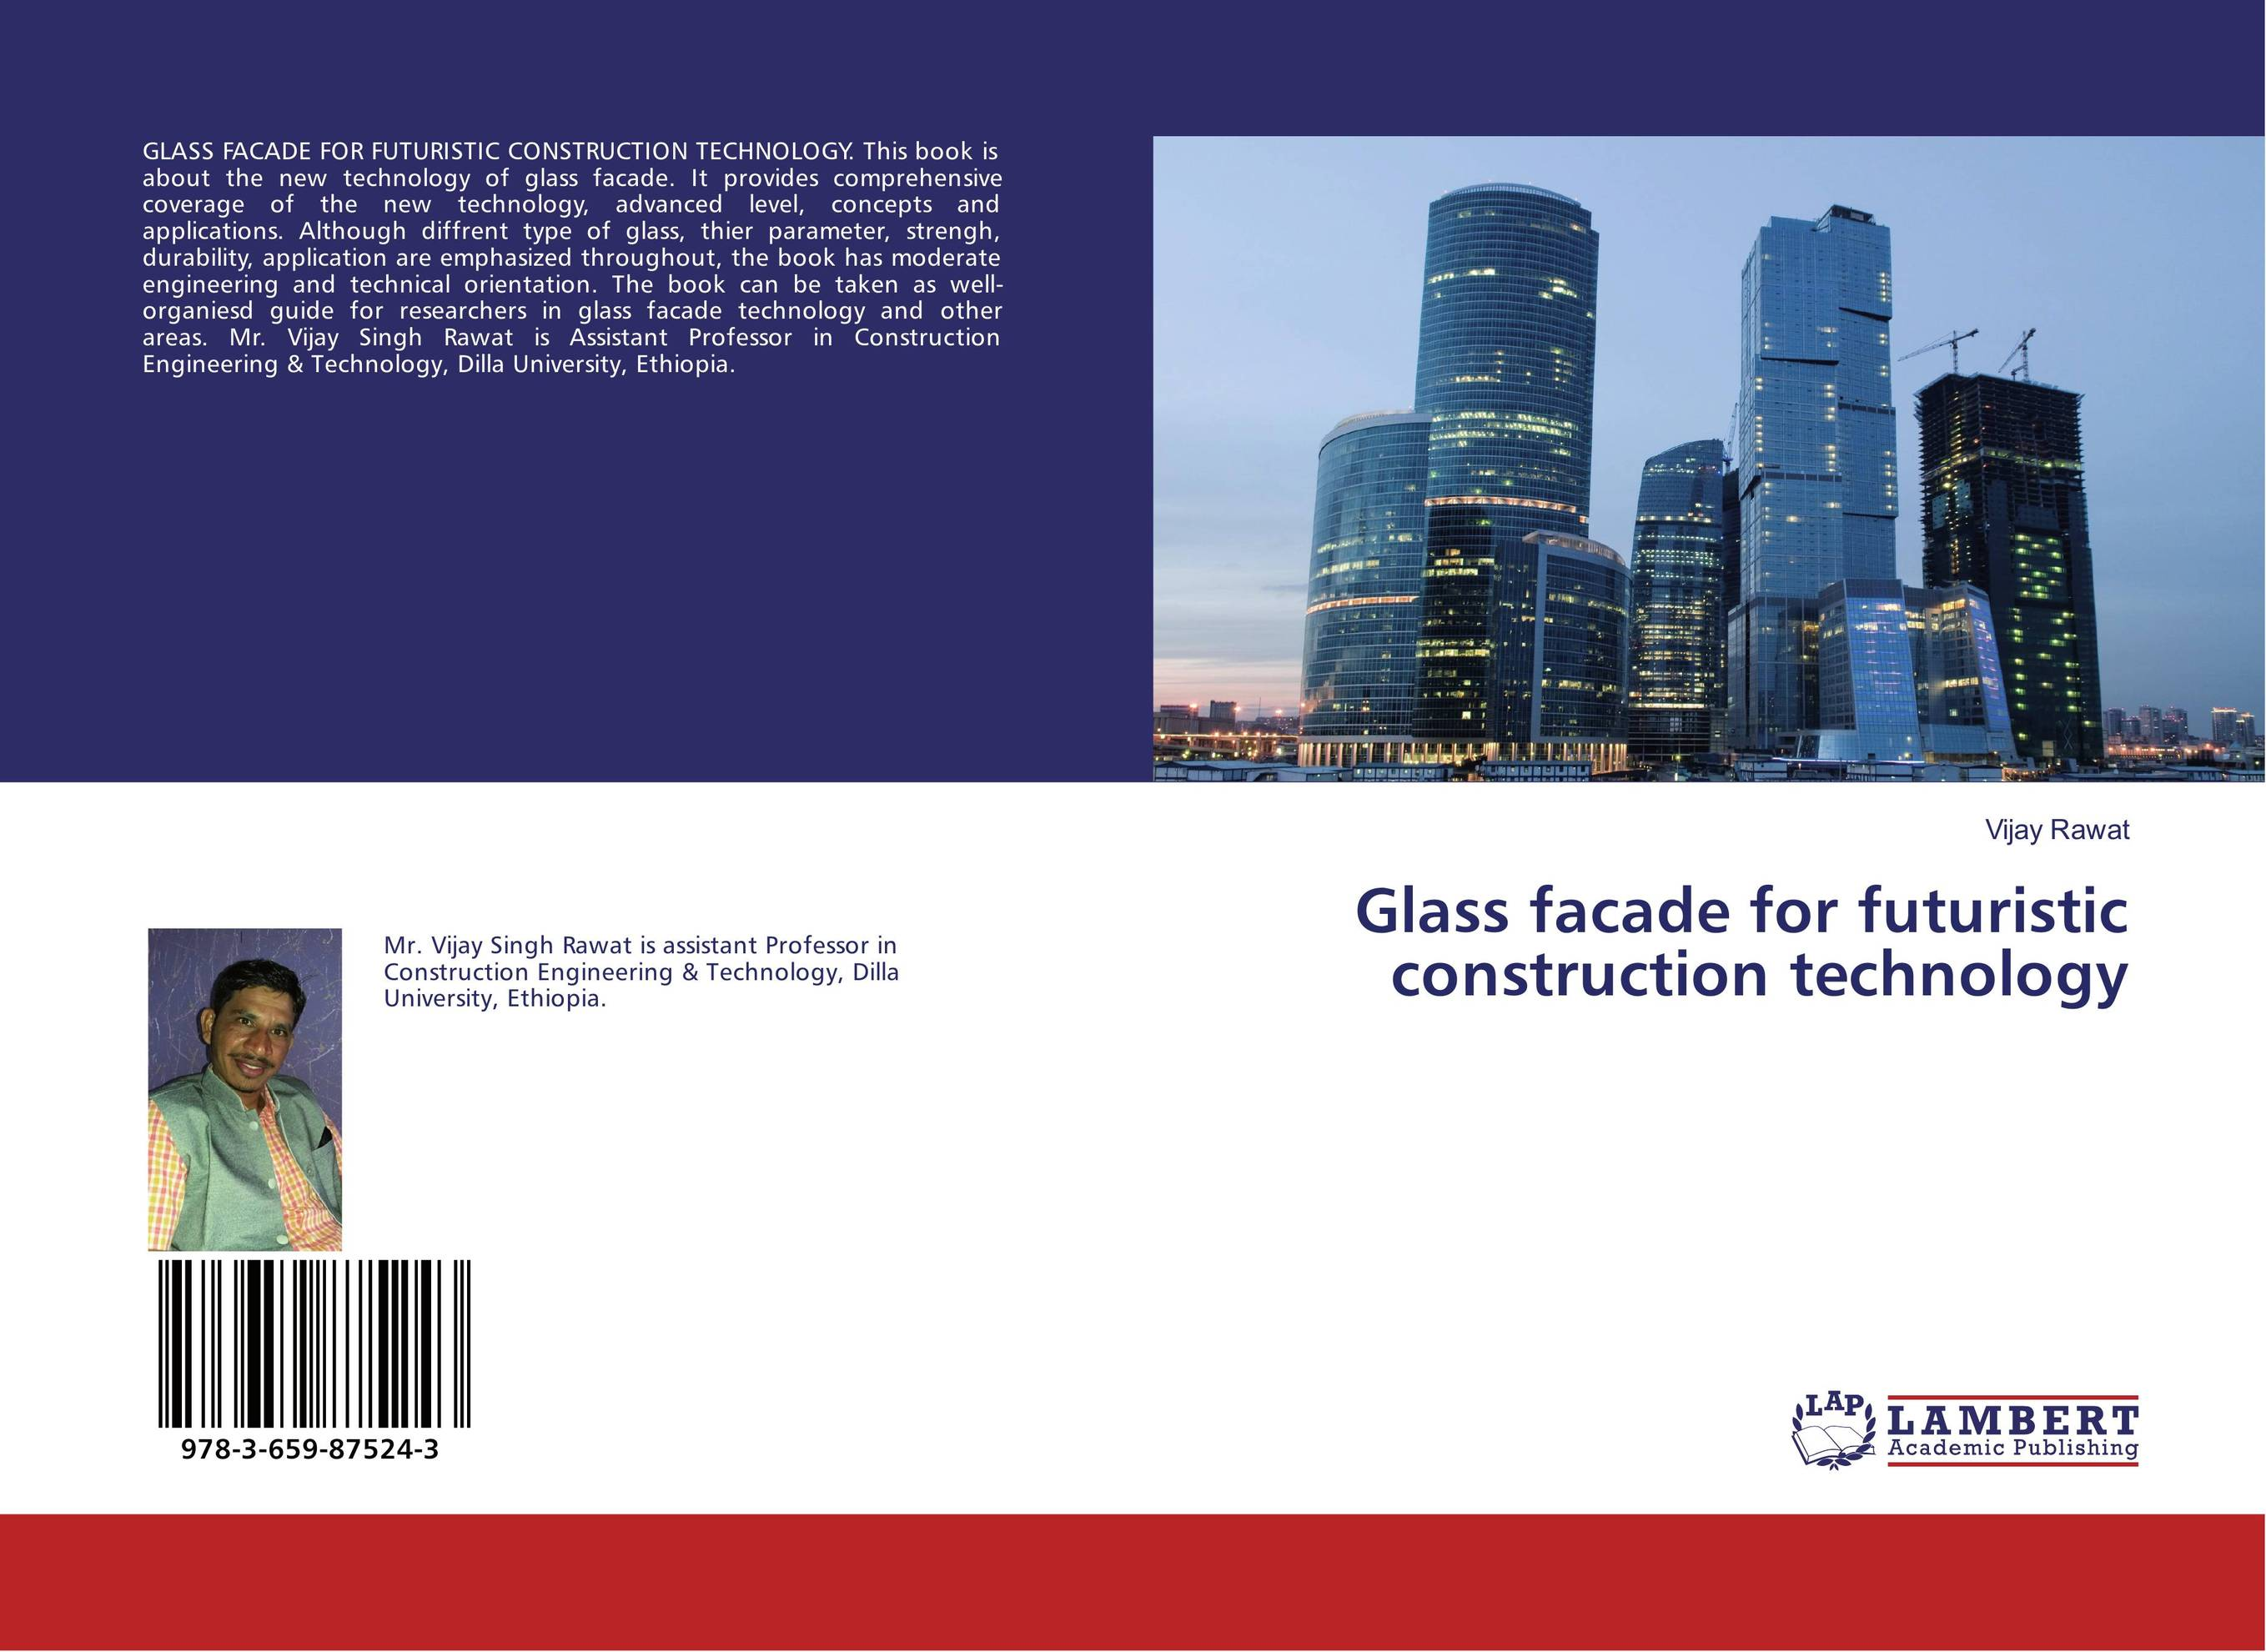 Glass facade for futuristic construction technology advanced engine technology